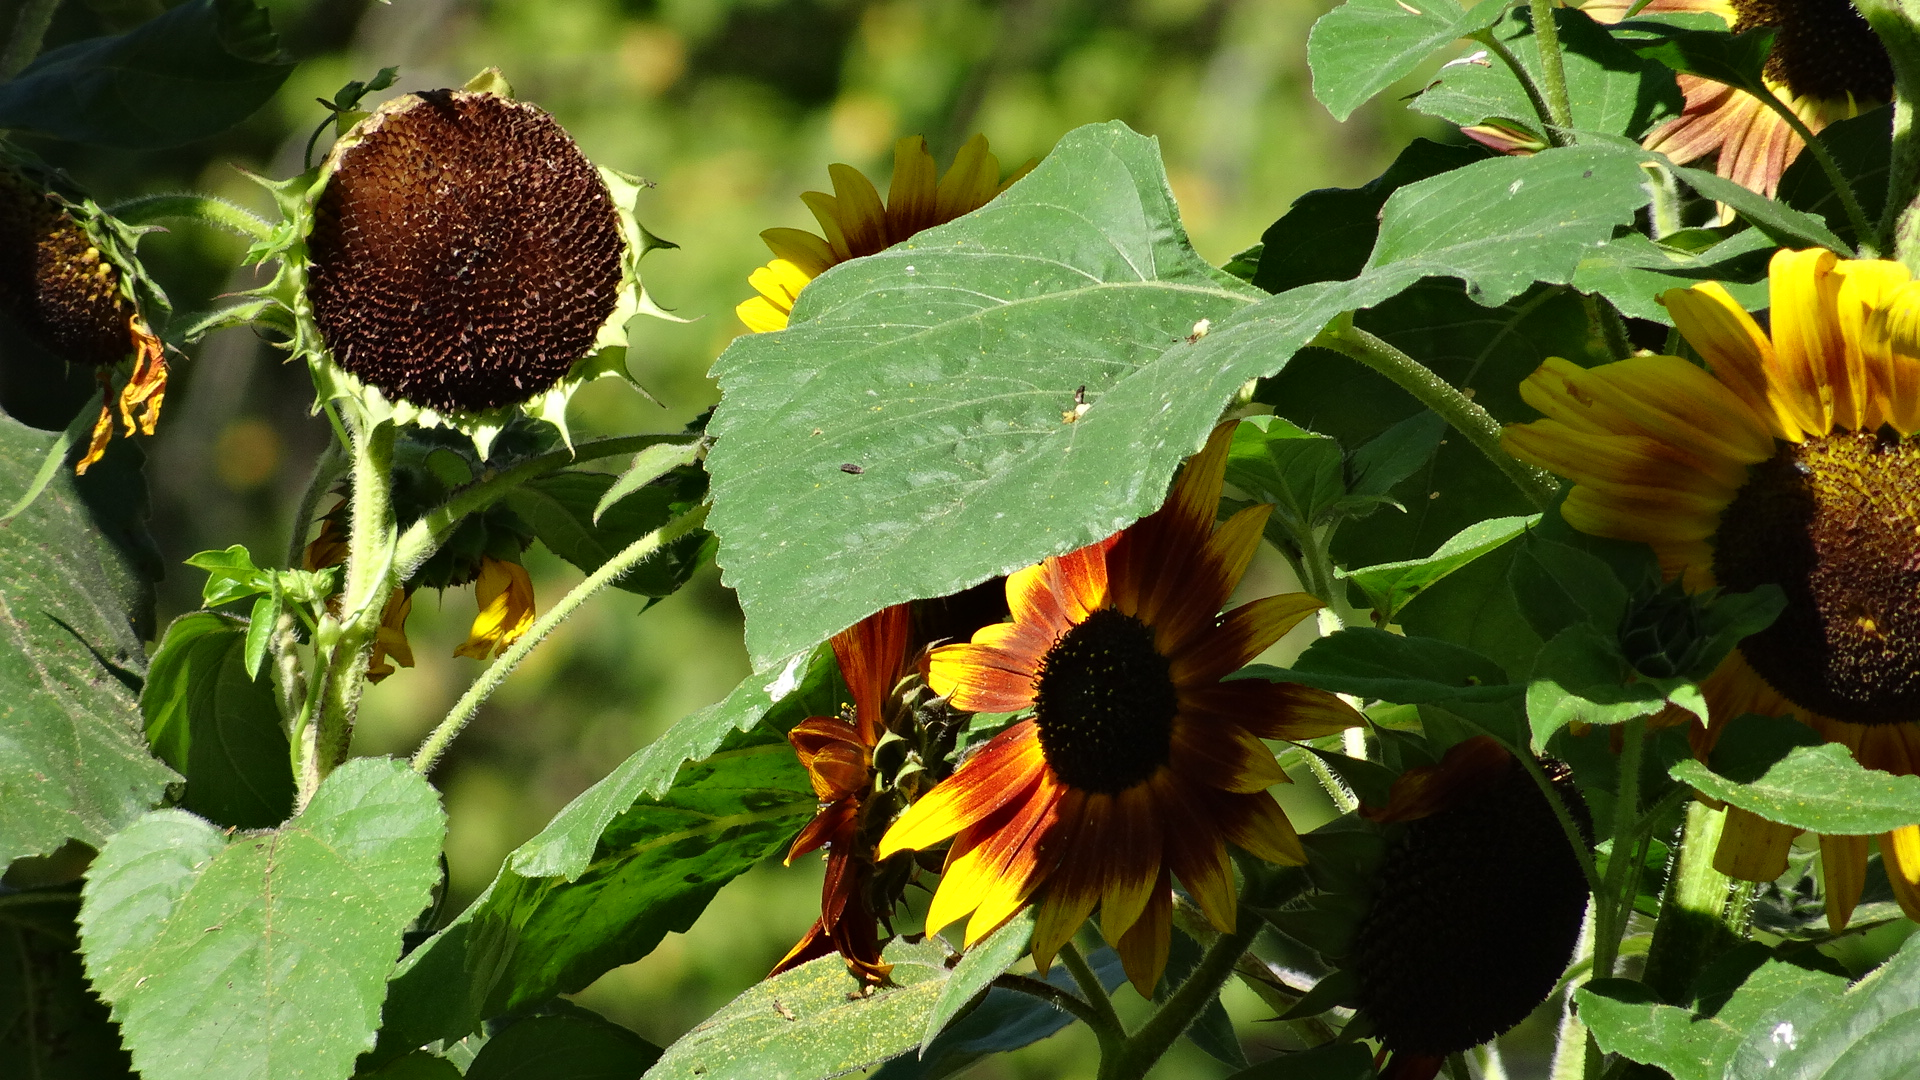 sonoma+sunflowers+france+IMG_0208